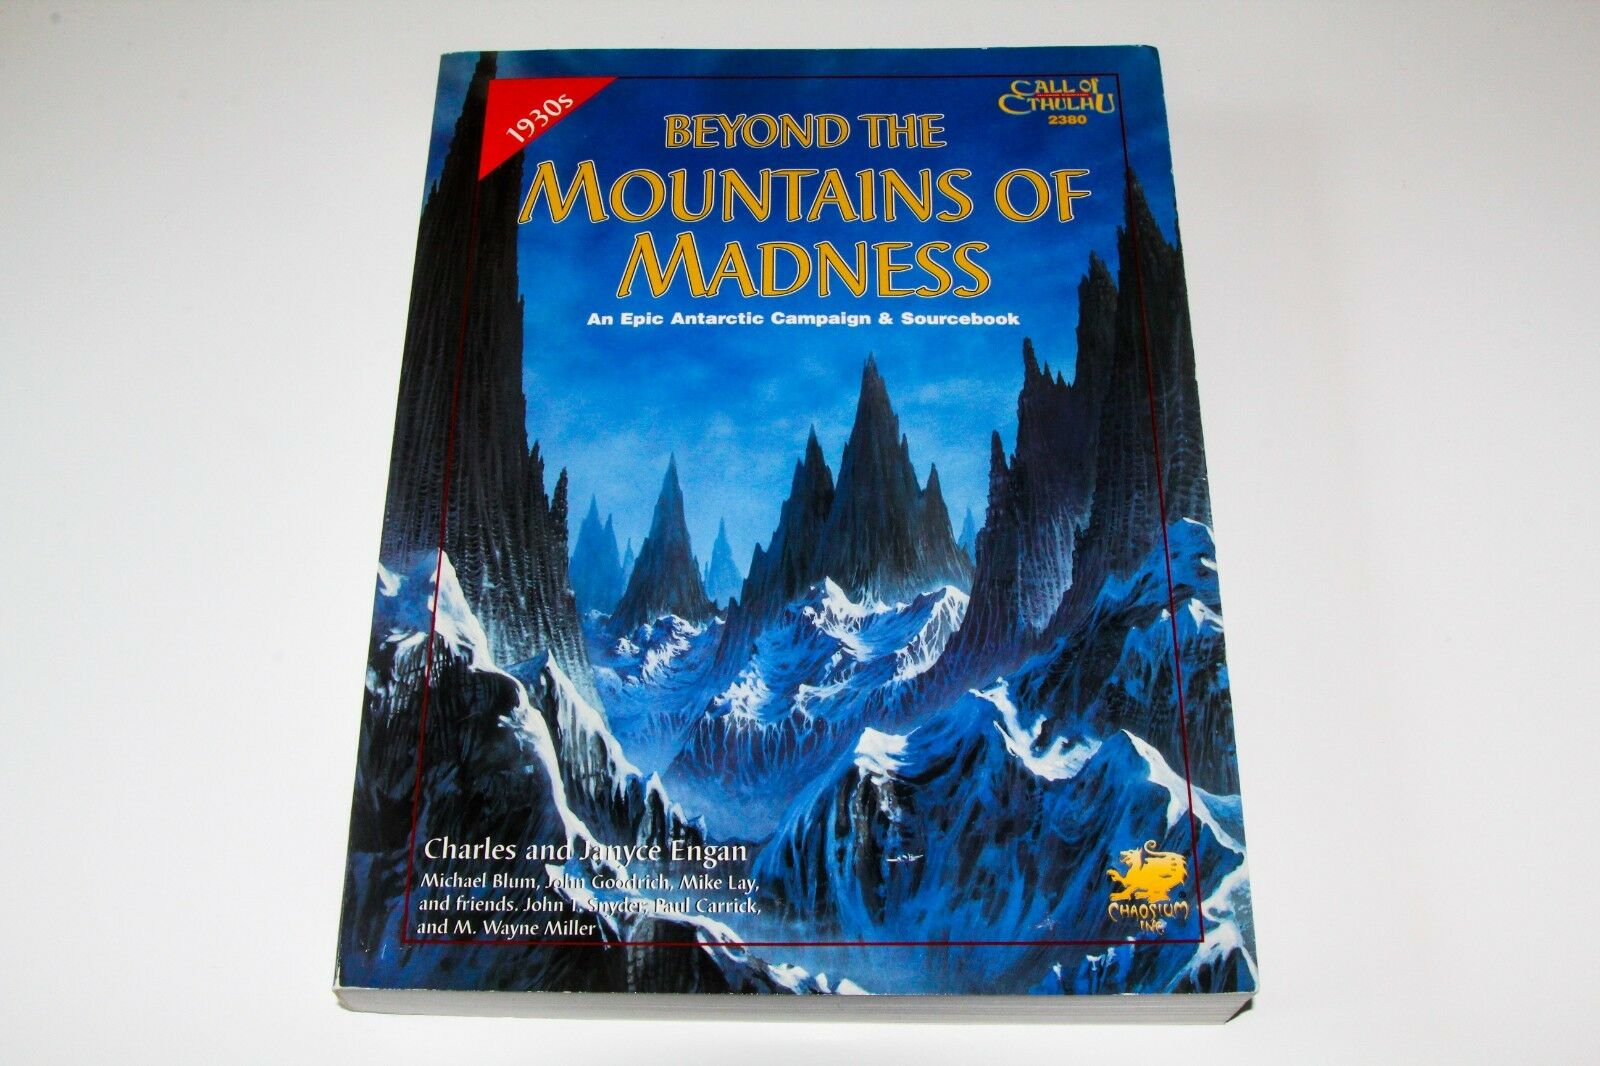 CALL OF CTHULHU - BEYOND THE MOUNTAINS OF MADNESS - CHAOSIUM